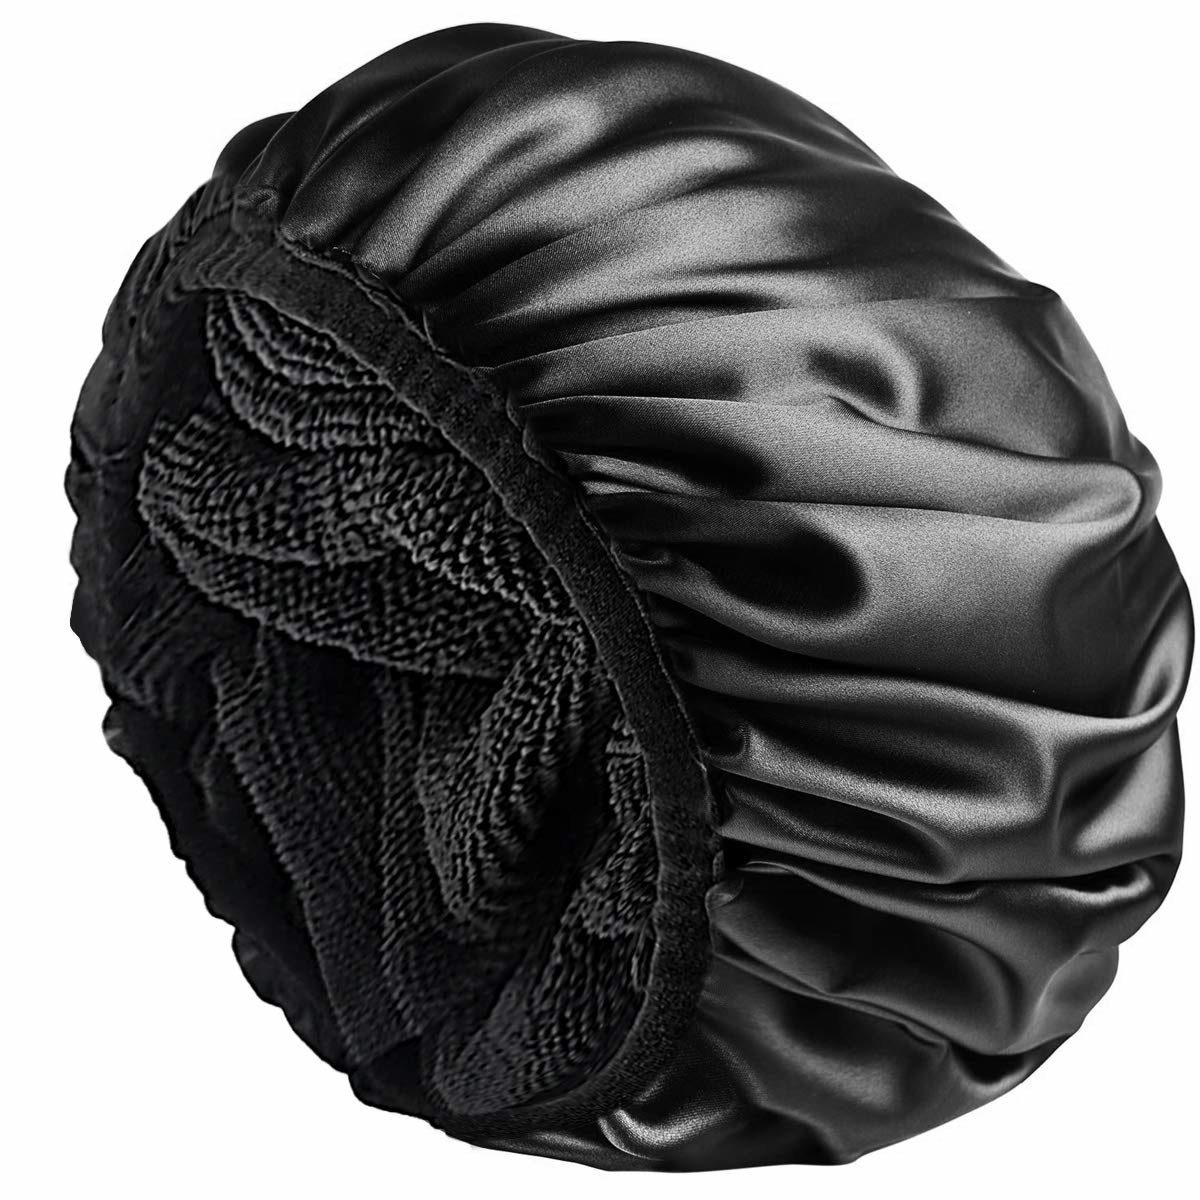 The shower cap with the microfiber lining exposed